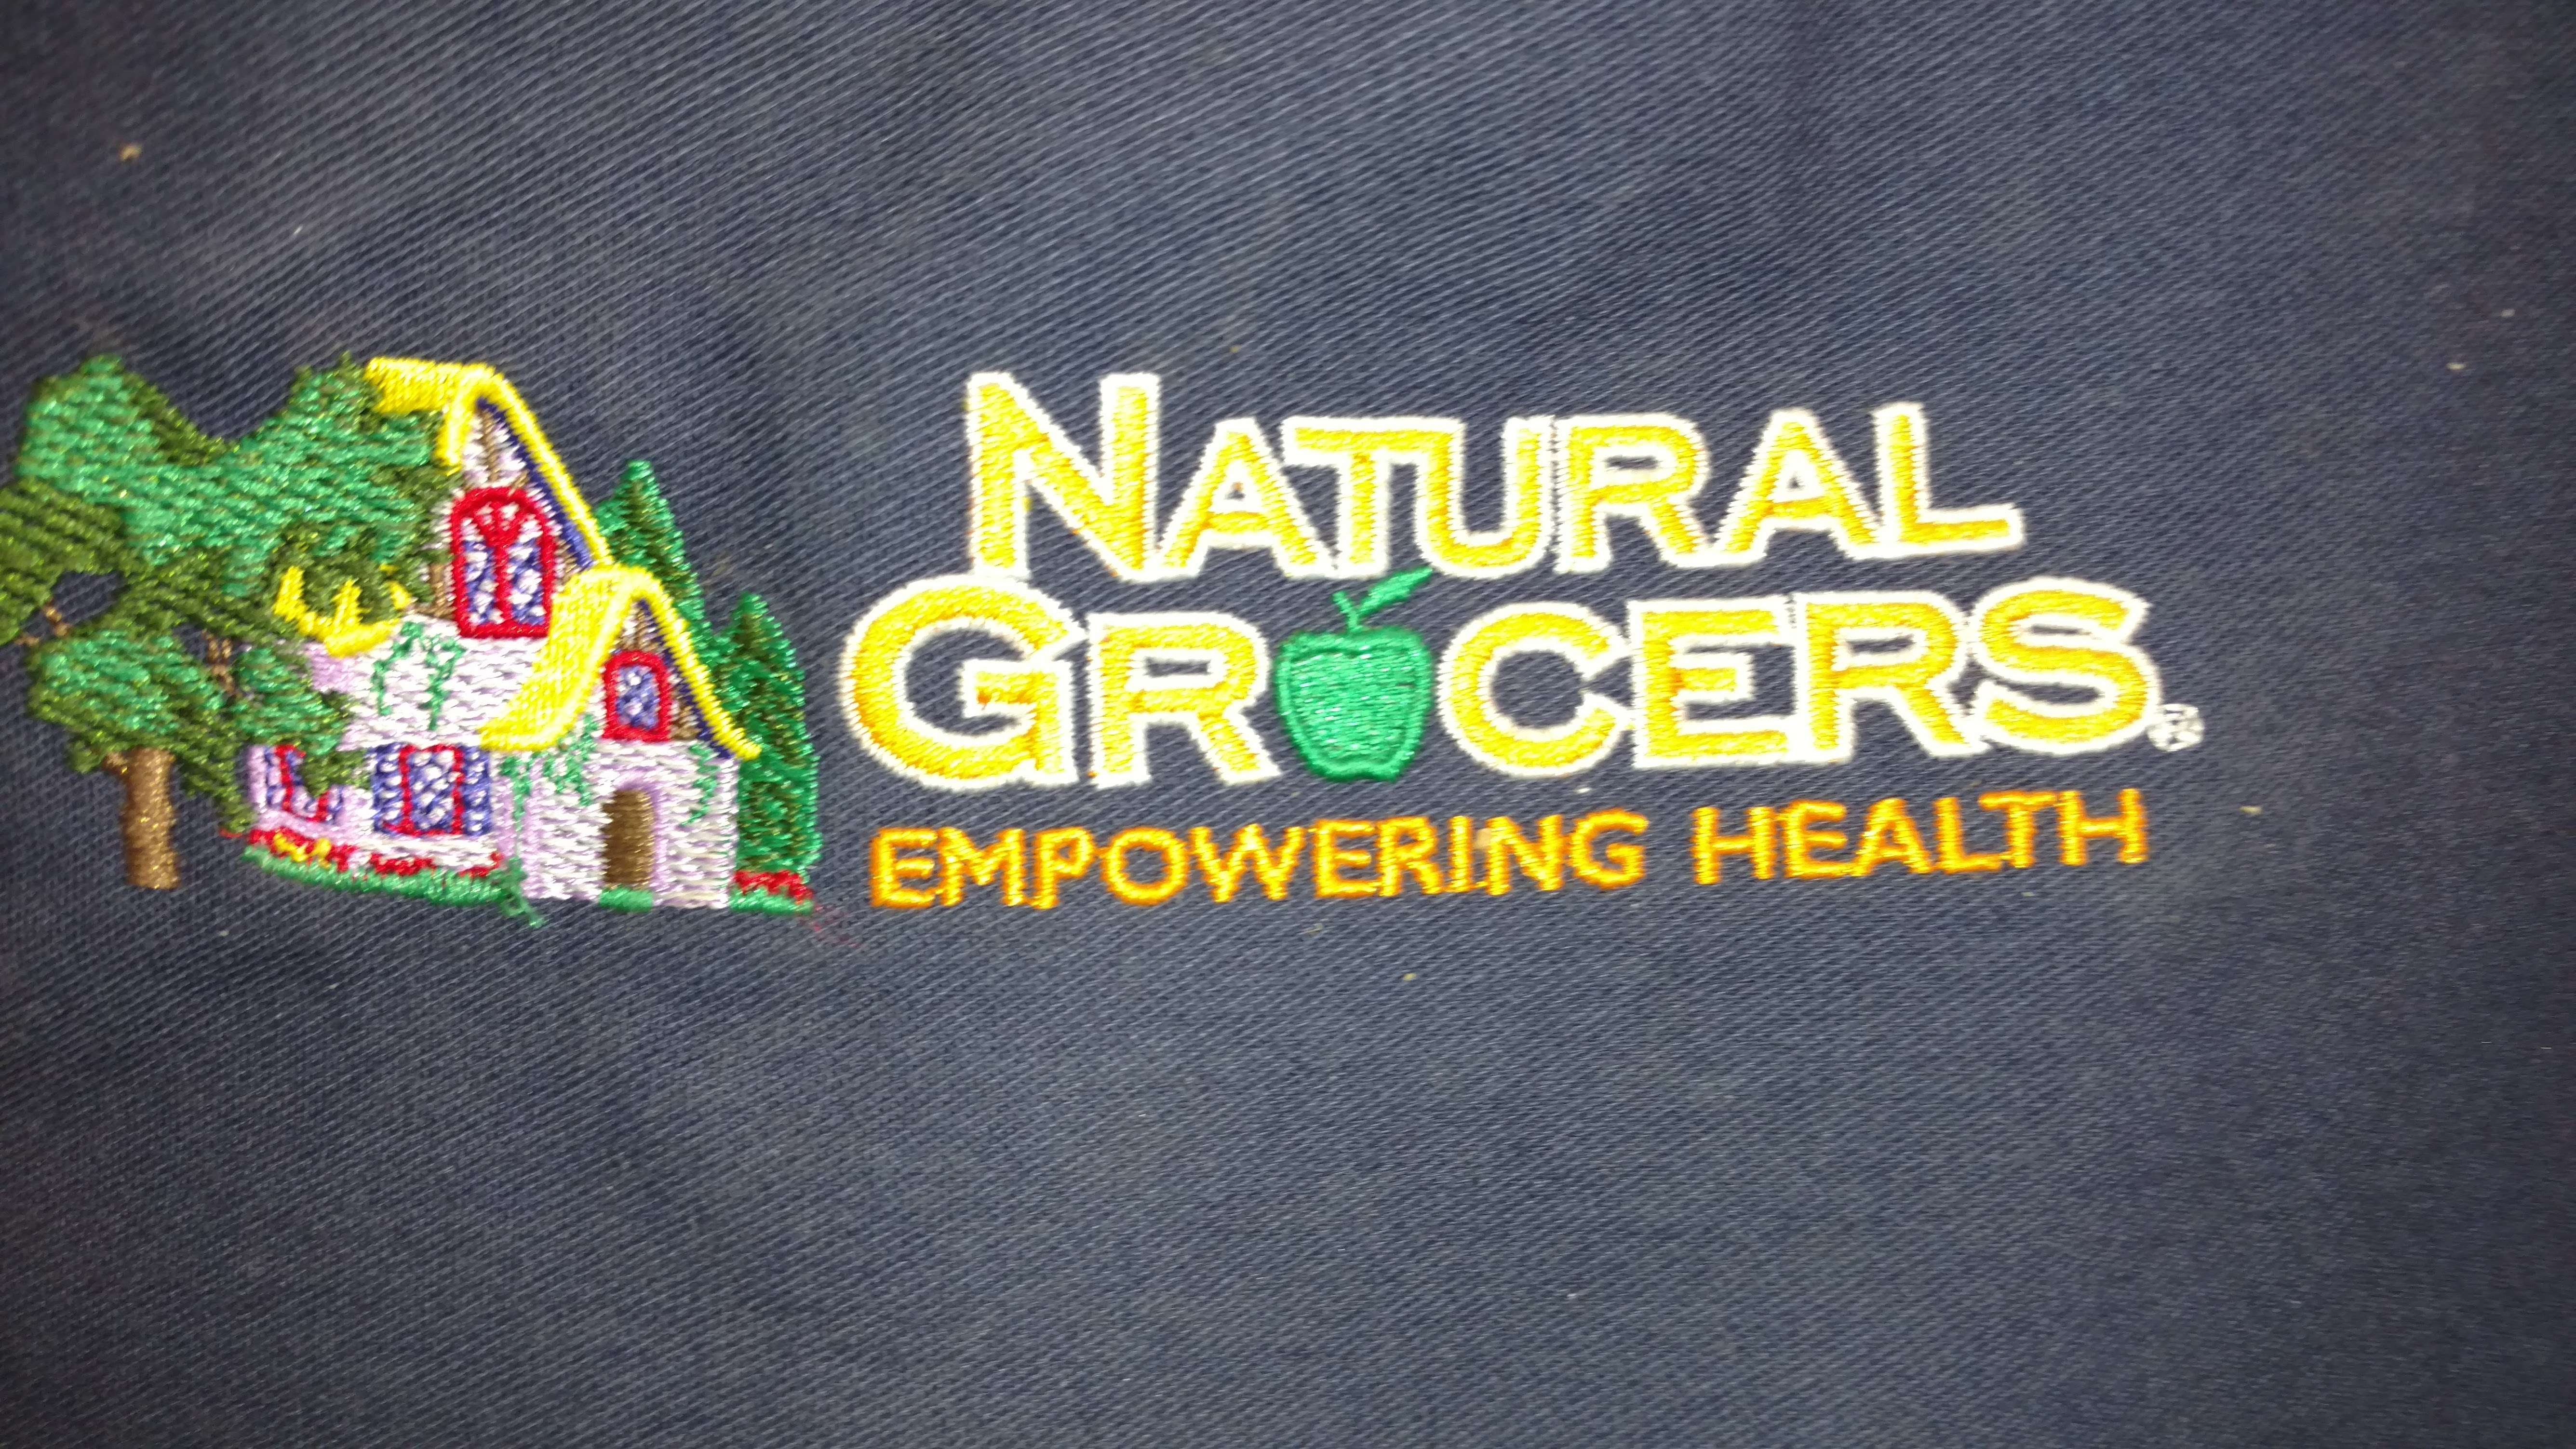 Natural_Grocers_empowering_health.jpg